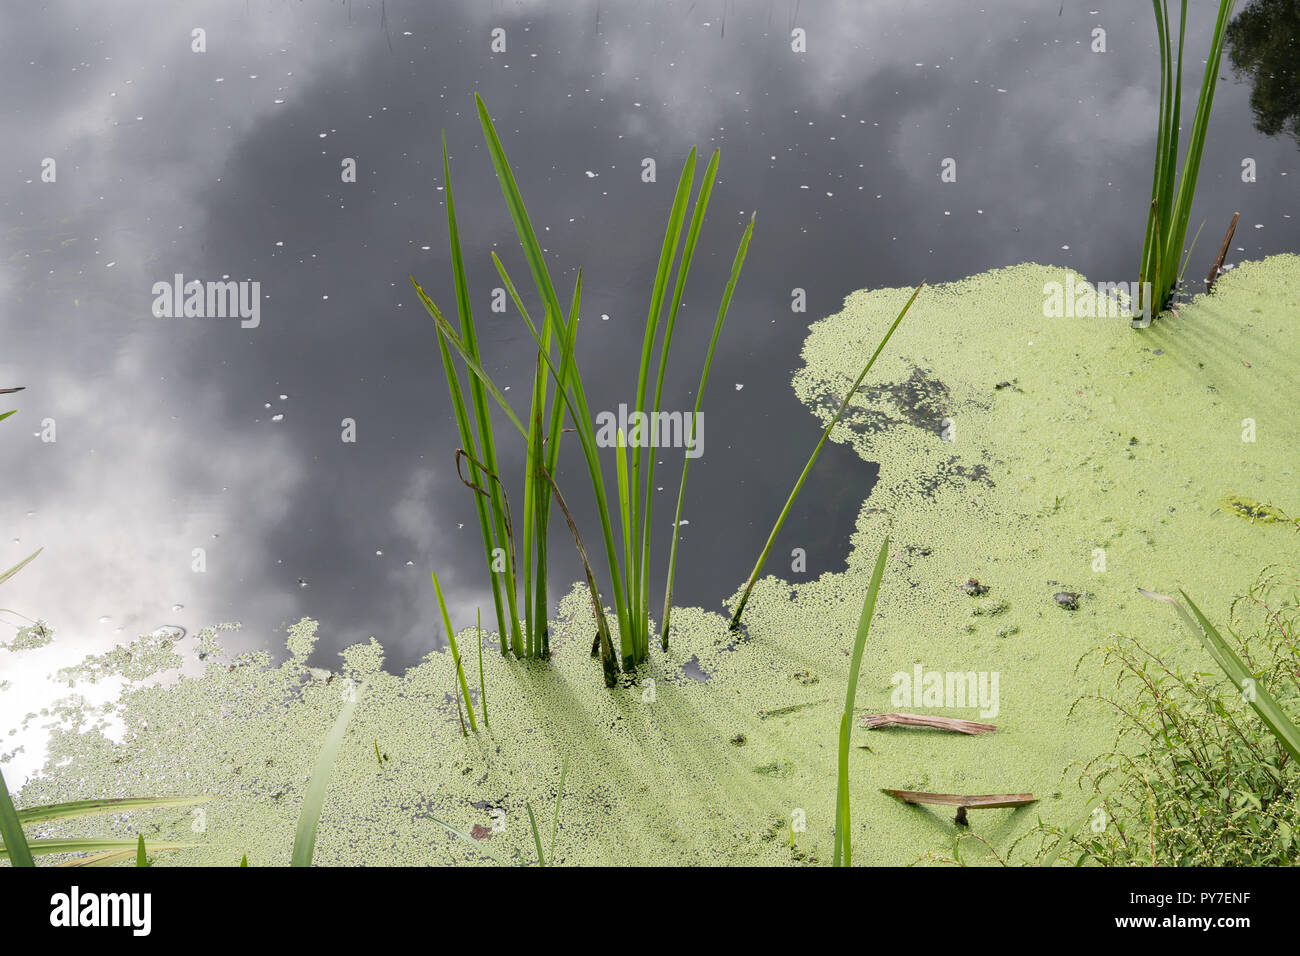 Stagnant water with algae bloom. Polluted river water. Water pollution concept Stock Photo